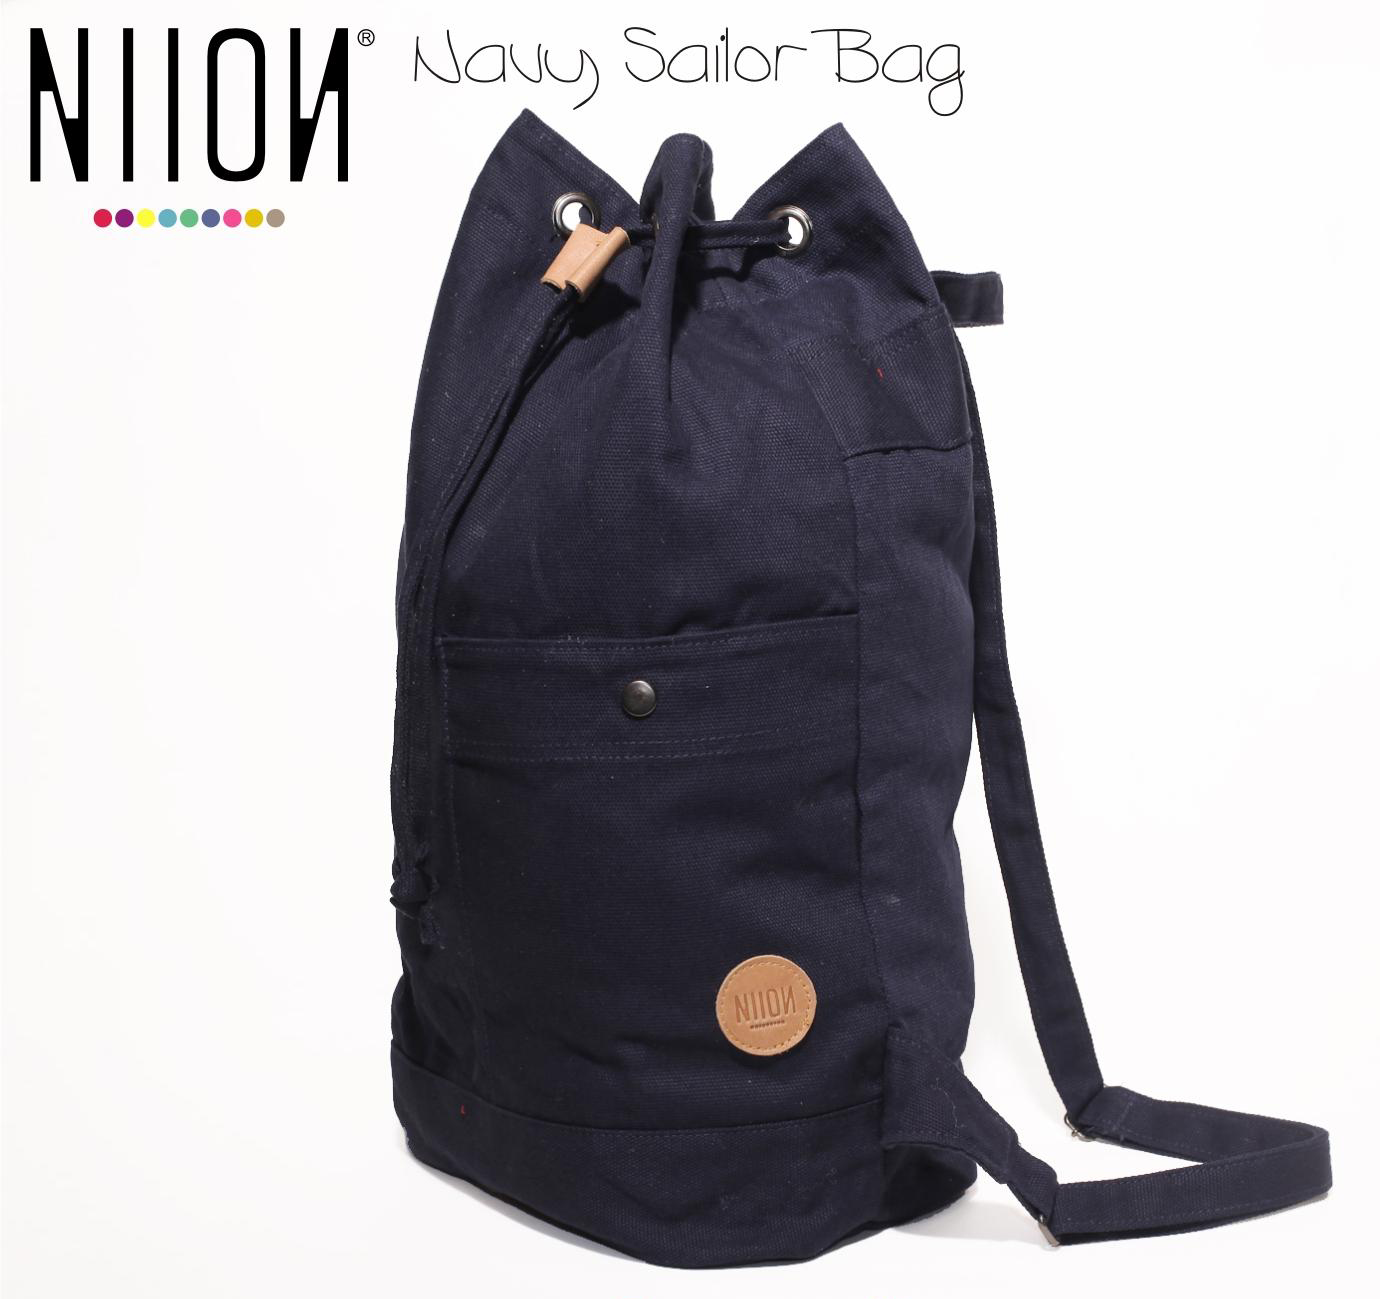 Molly S Trolley Niion Sailor Bag